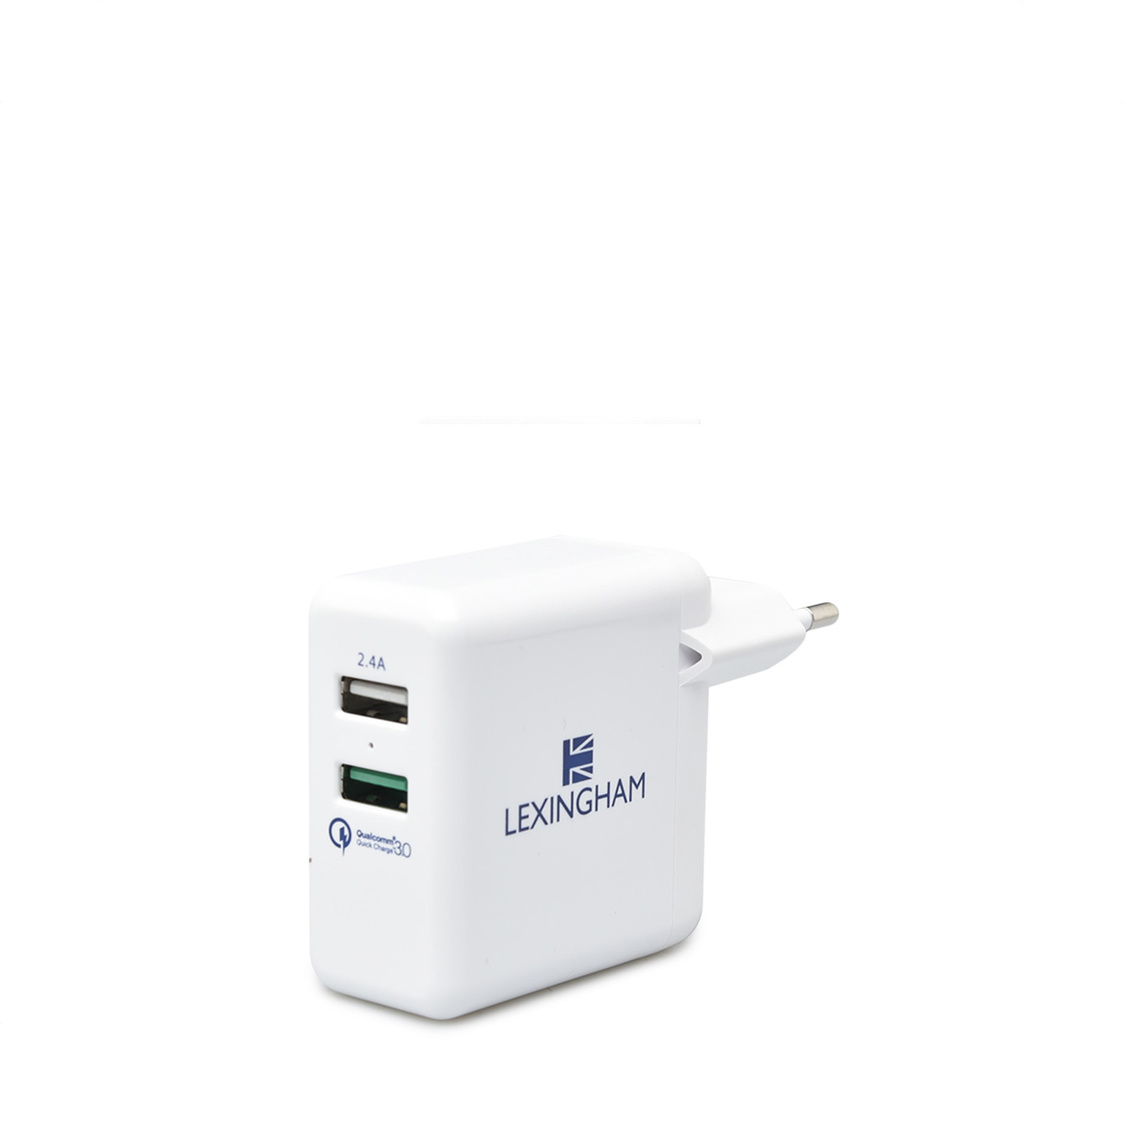 Lexingham Wall Charger - Europe 2 Port Qc3024A